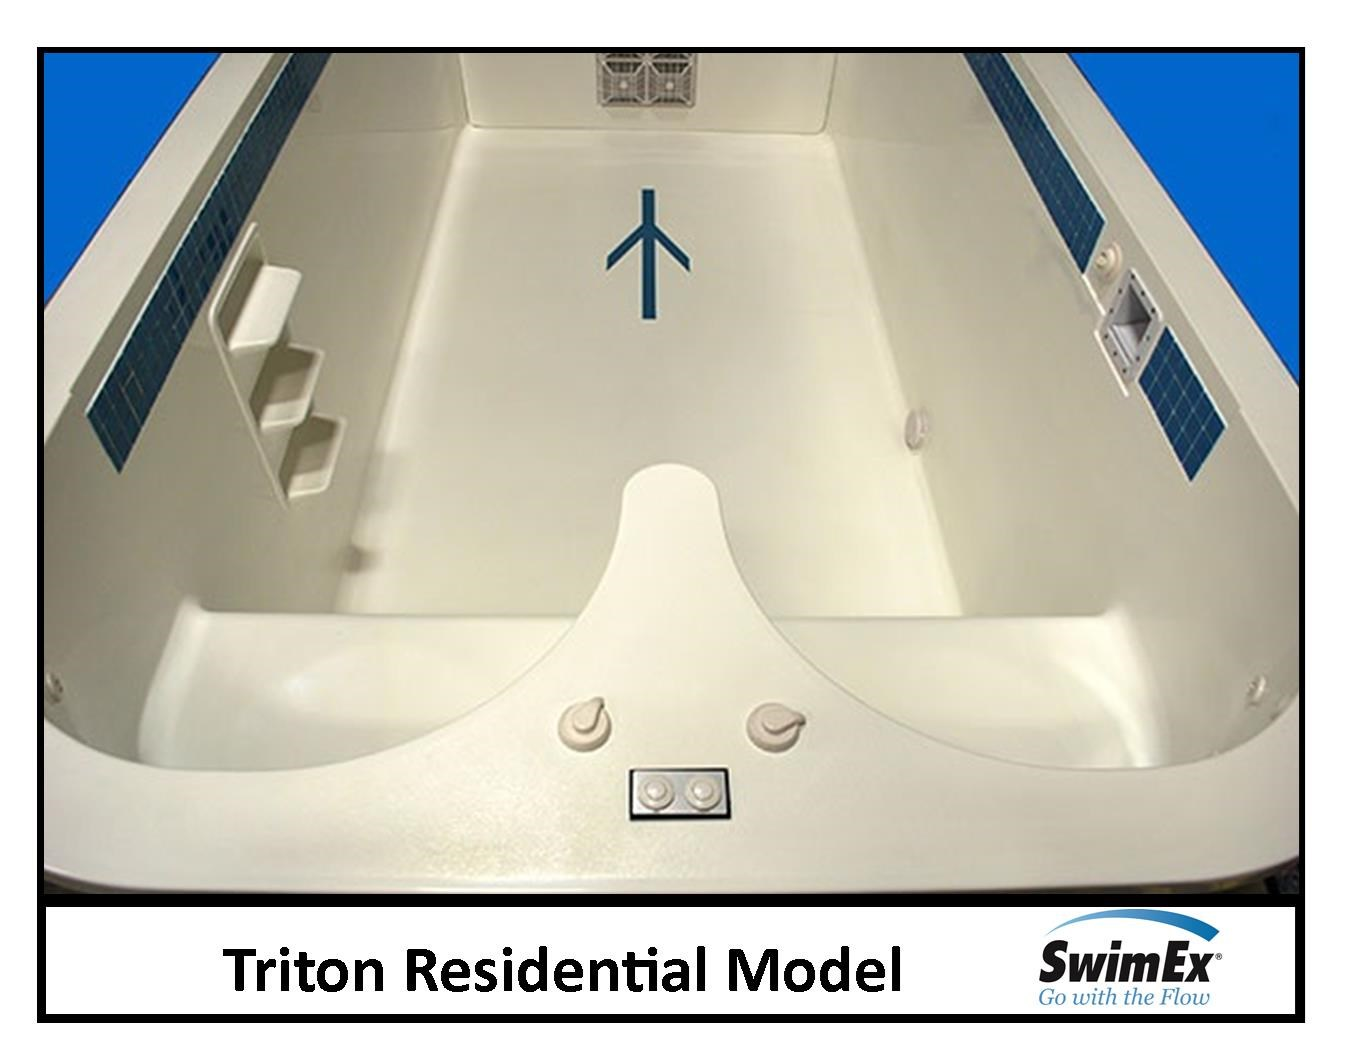 SwimEx debuts Triton Pool